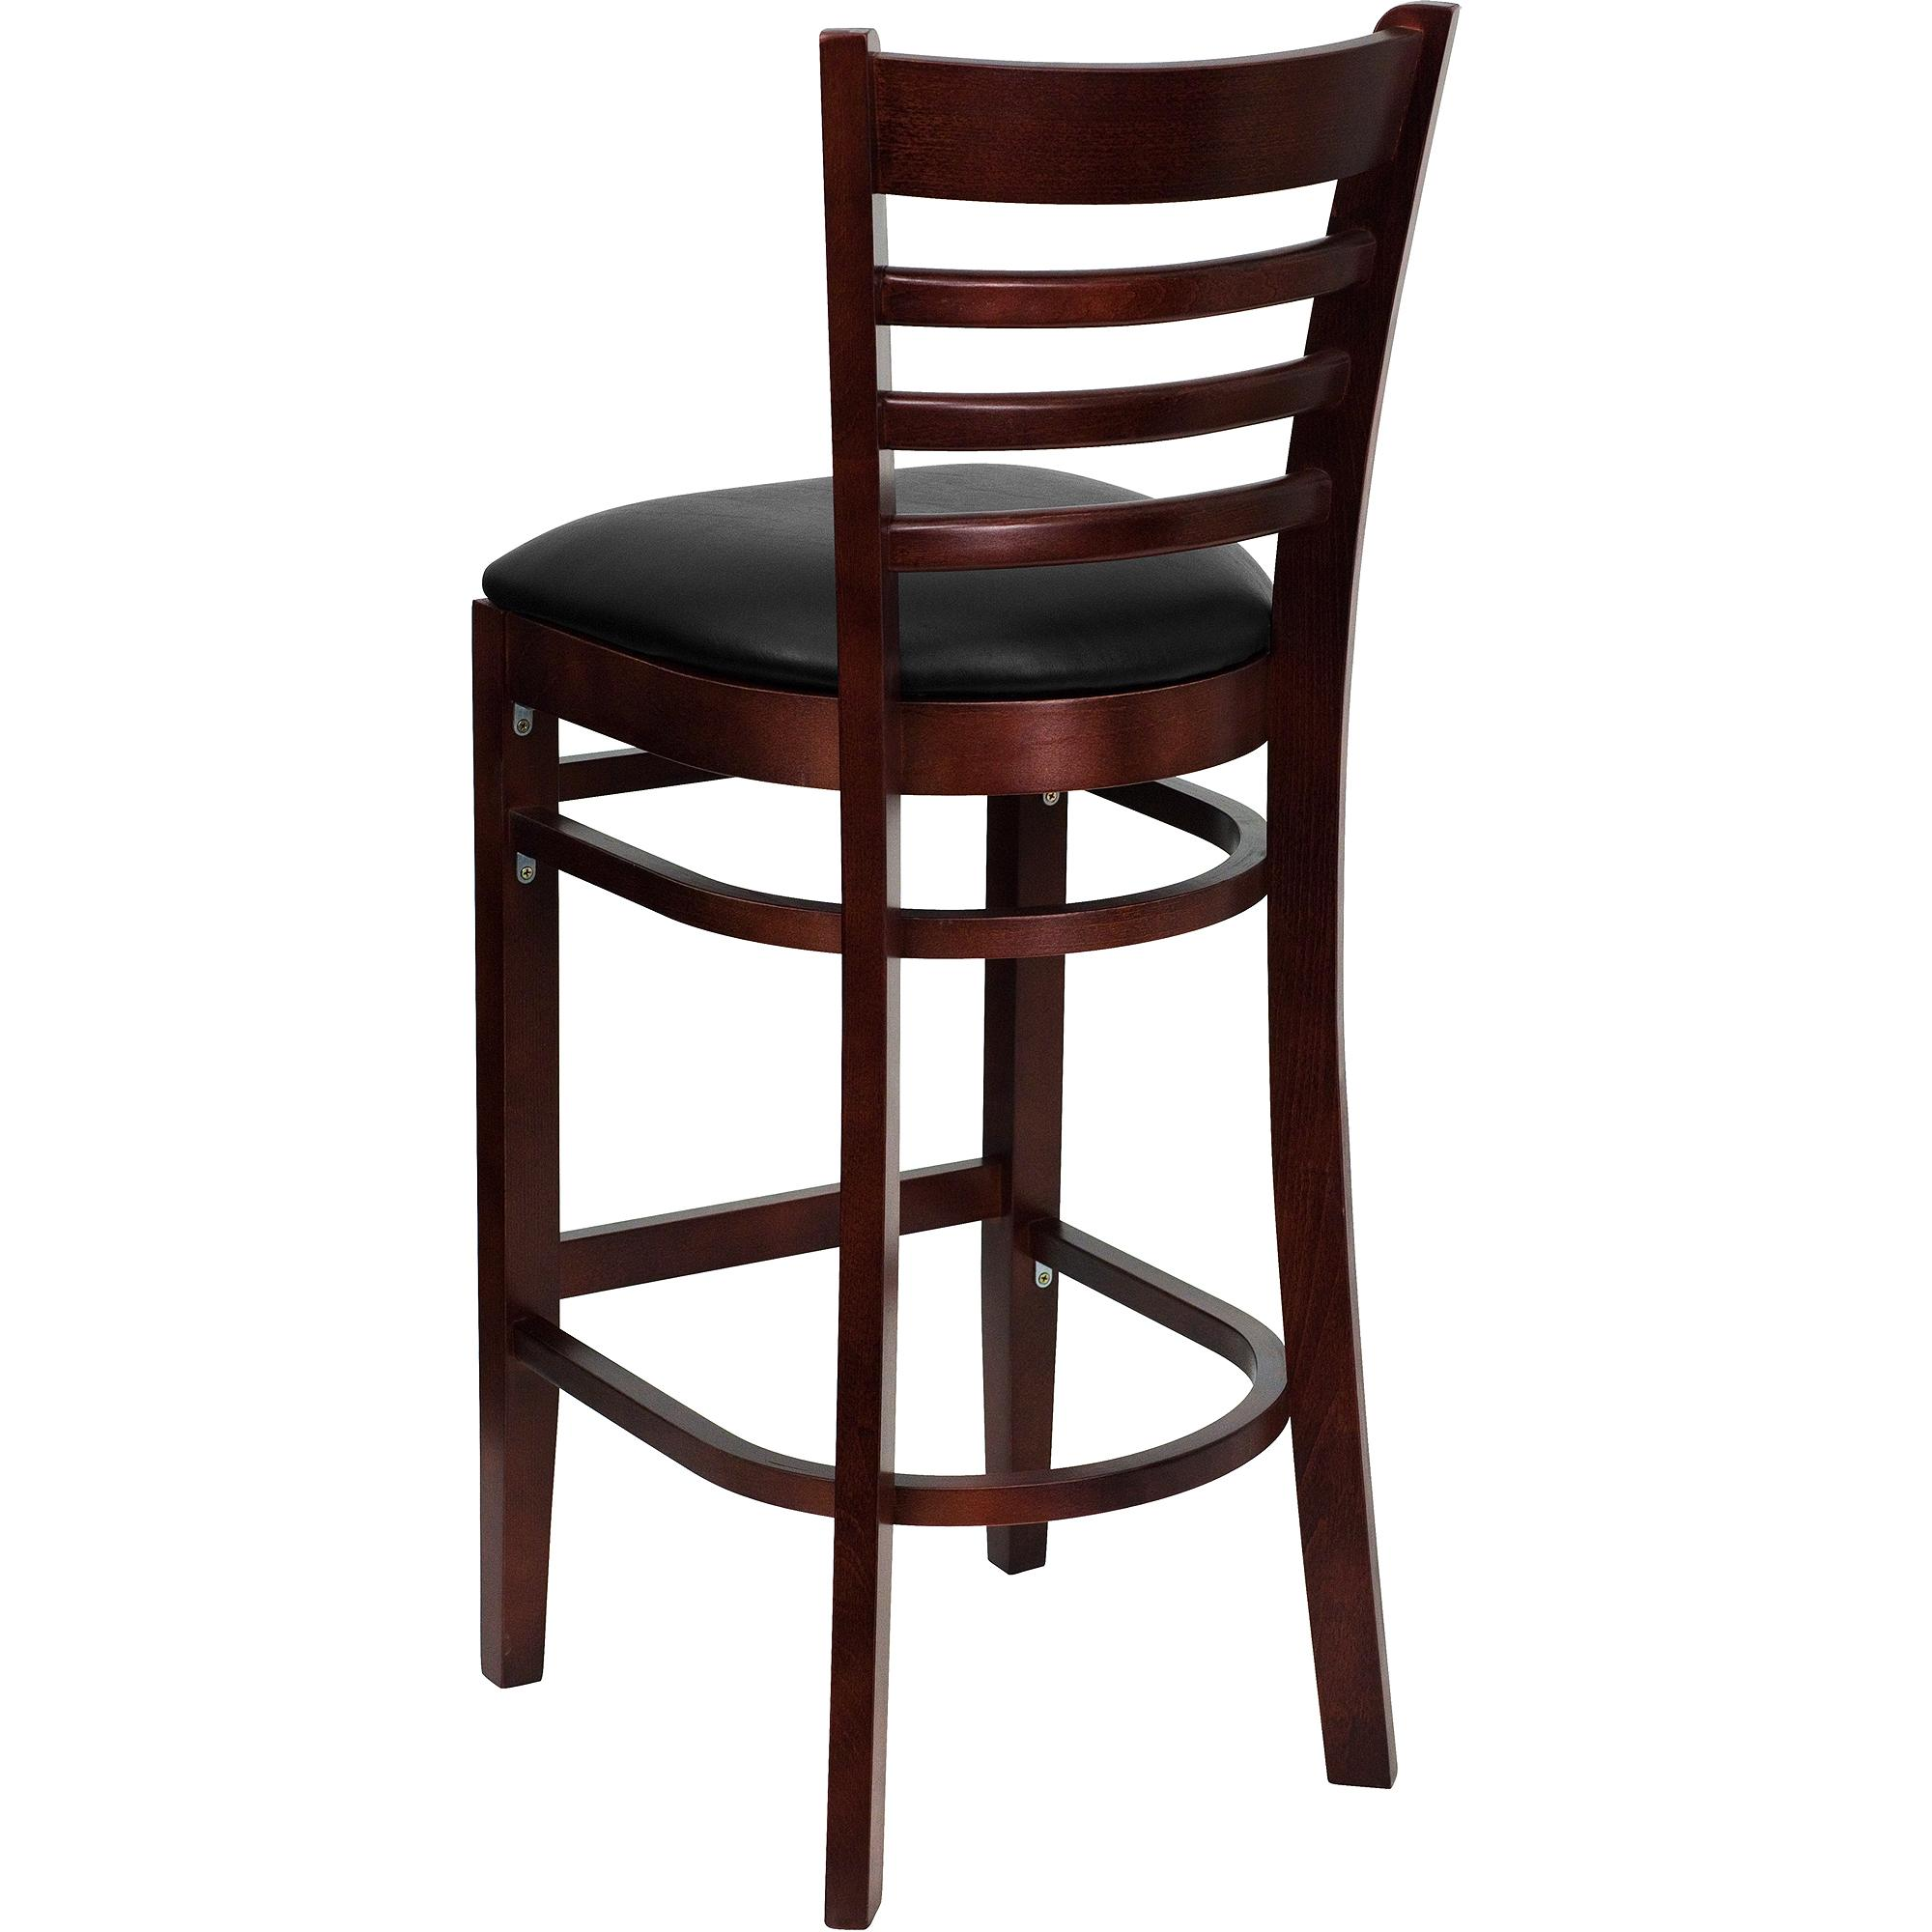 charming cymax bar stools in brown with black leather set for inspiring furniture ideas